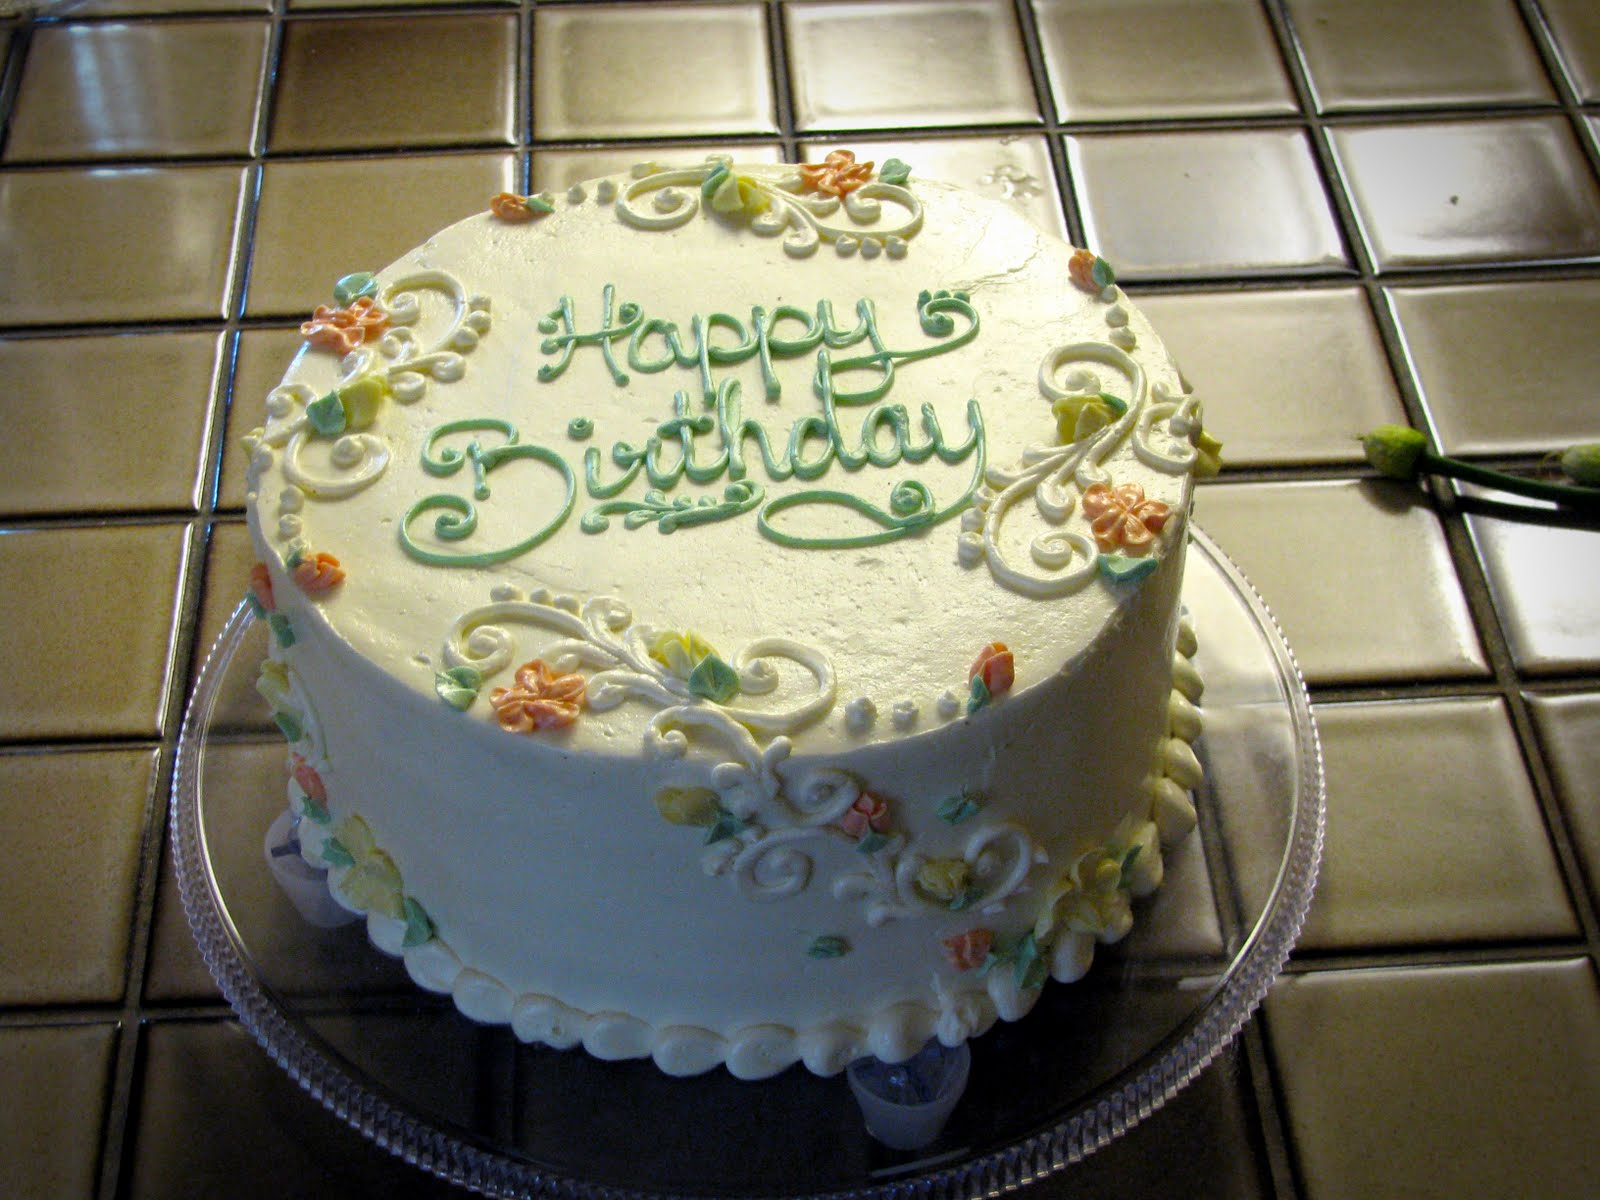 Birthday Cakes For Cheap ~ Birthday cake images for girls clip art pictures pics with name ideas candles love designs